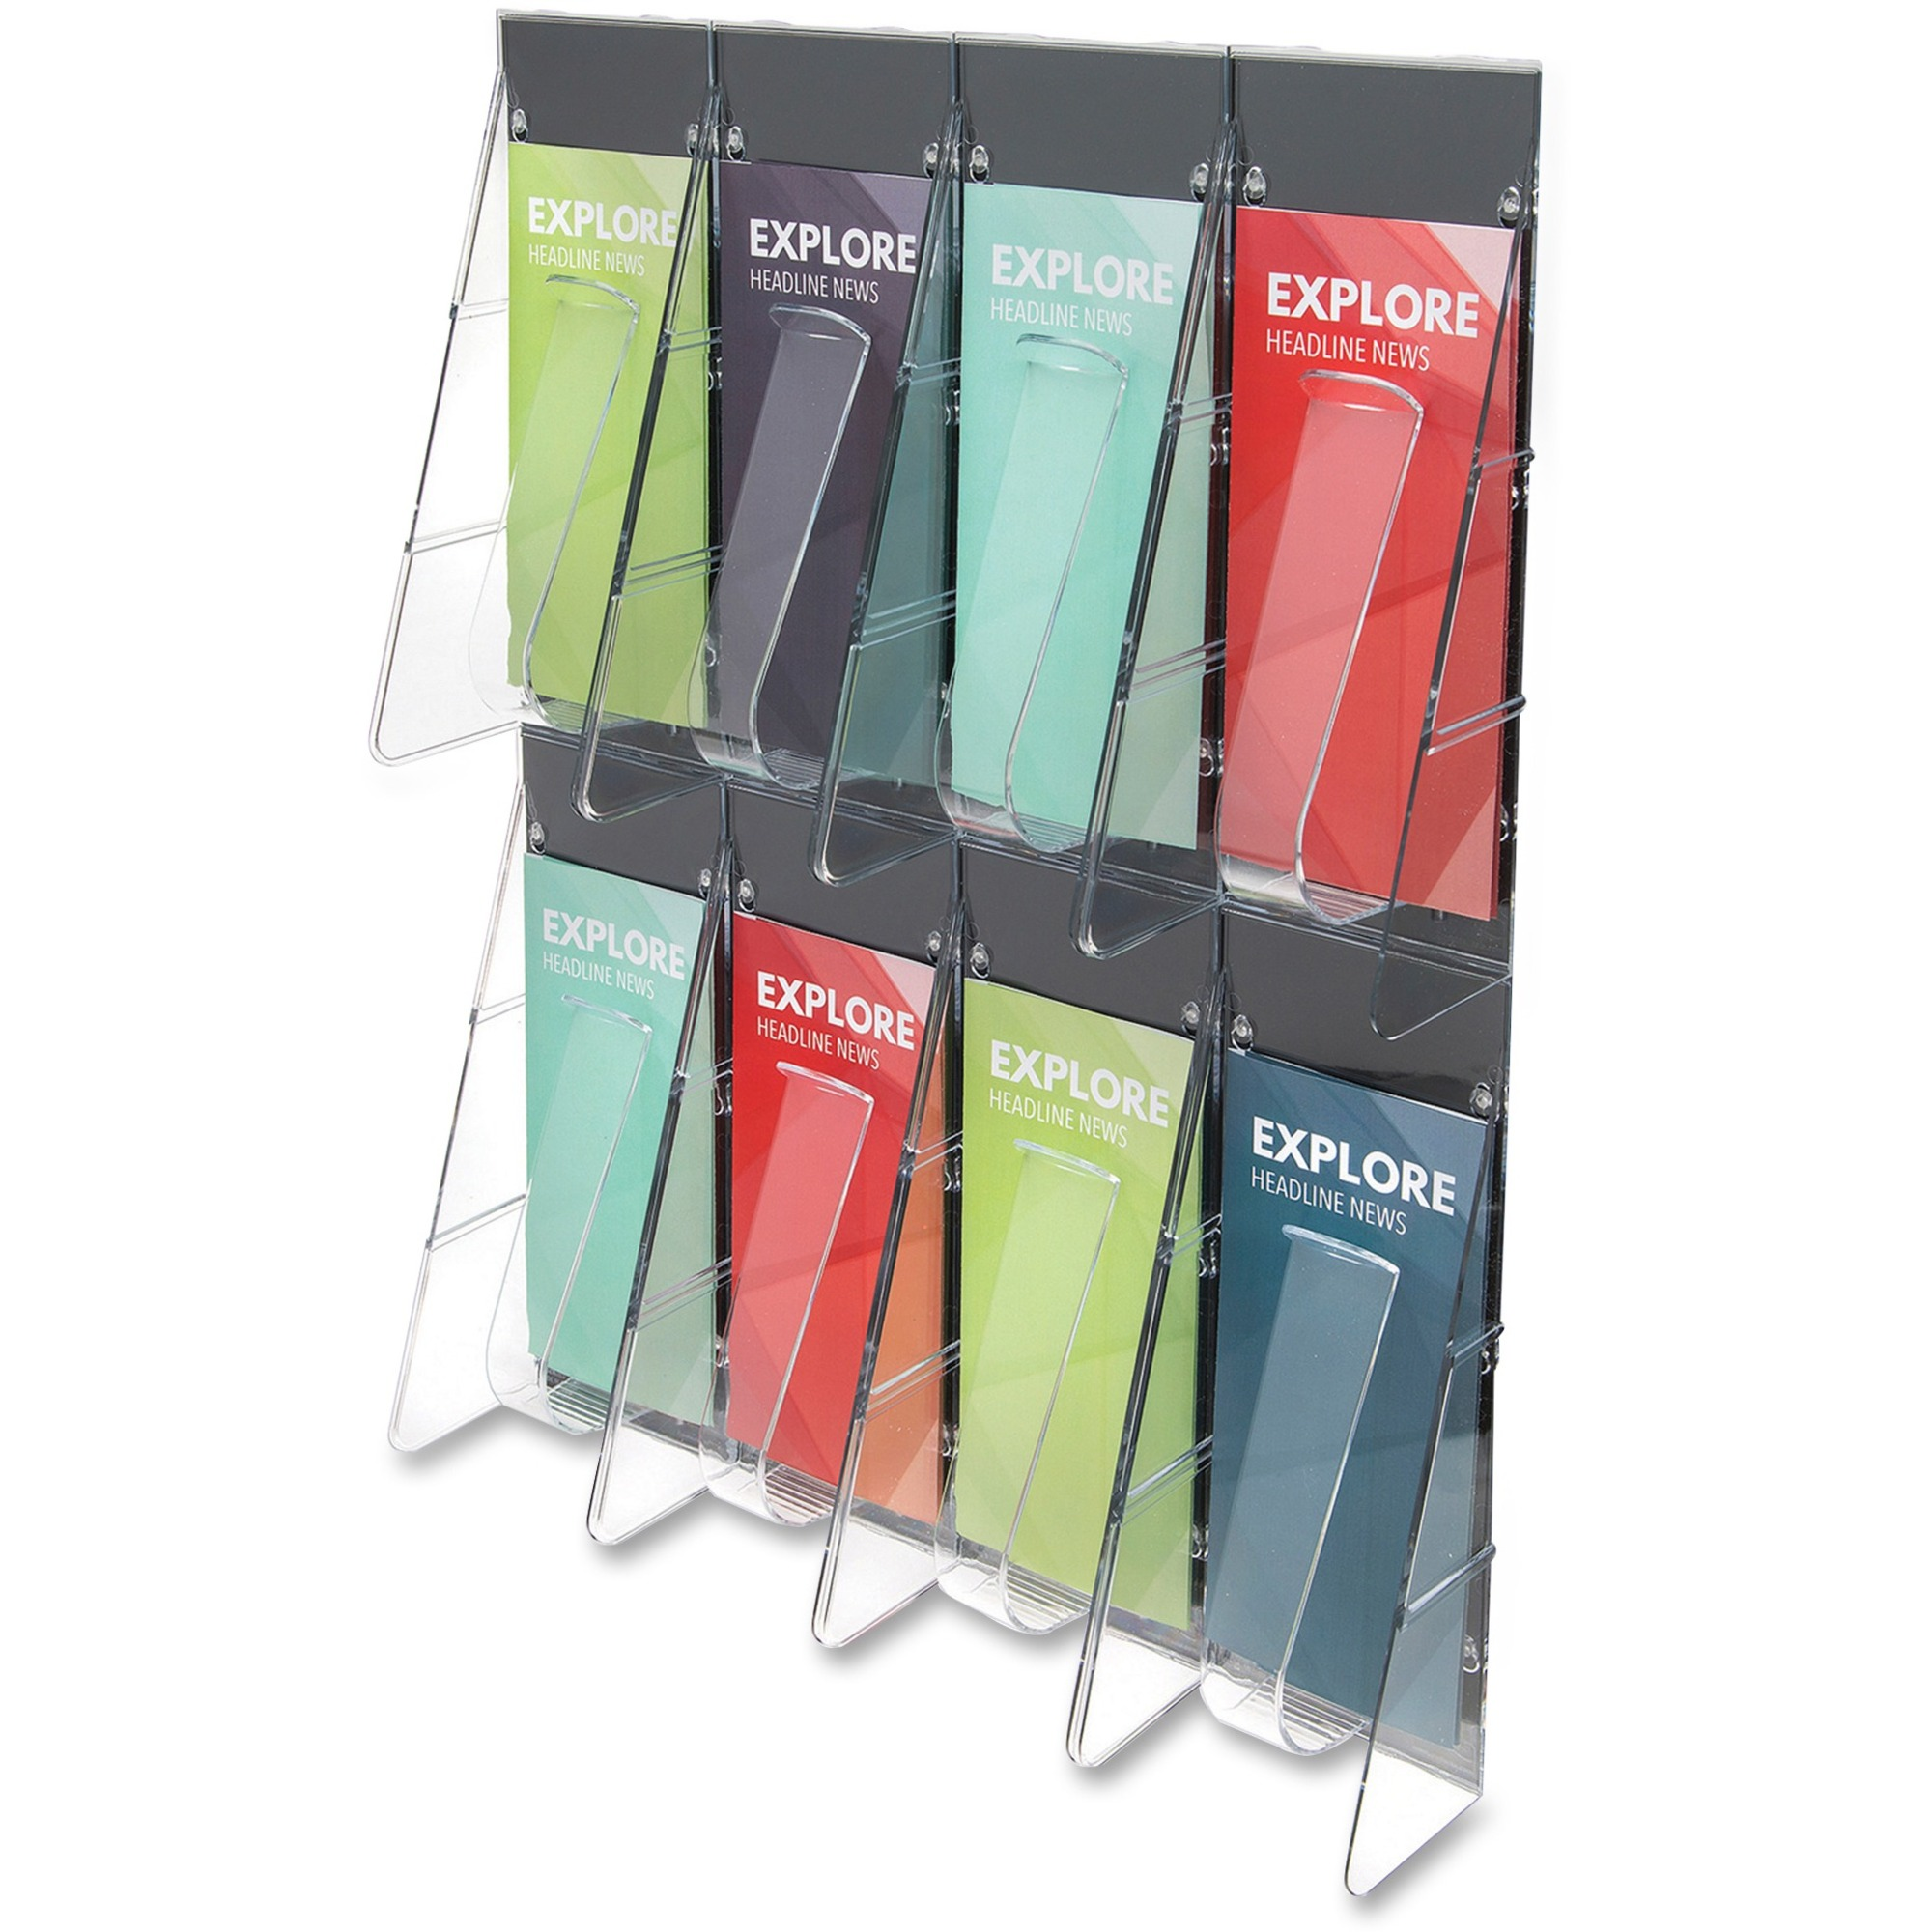 mount display holder tall broker wall dl rack holders index brochure and stand sign